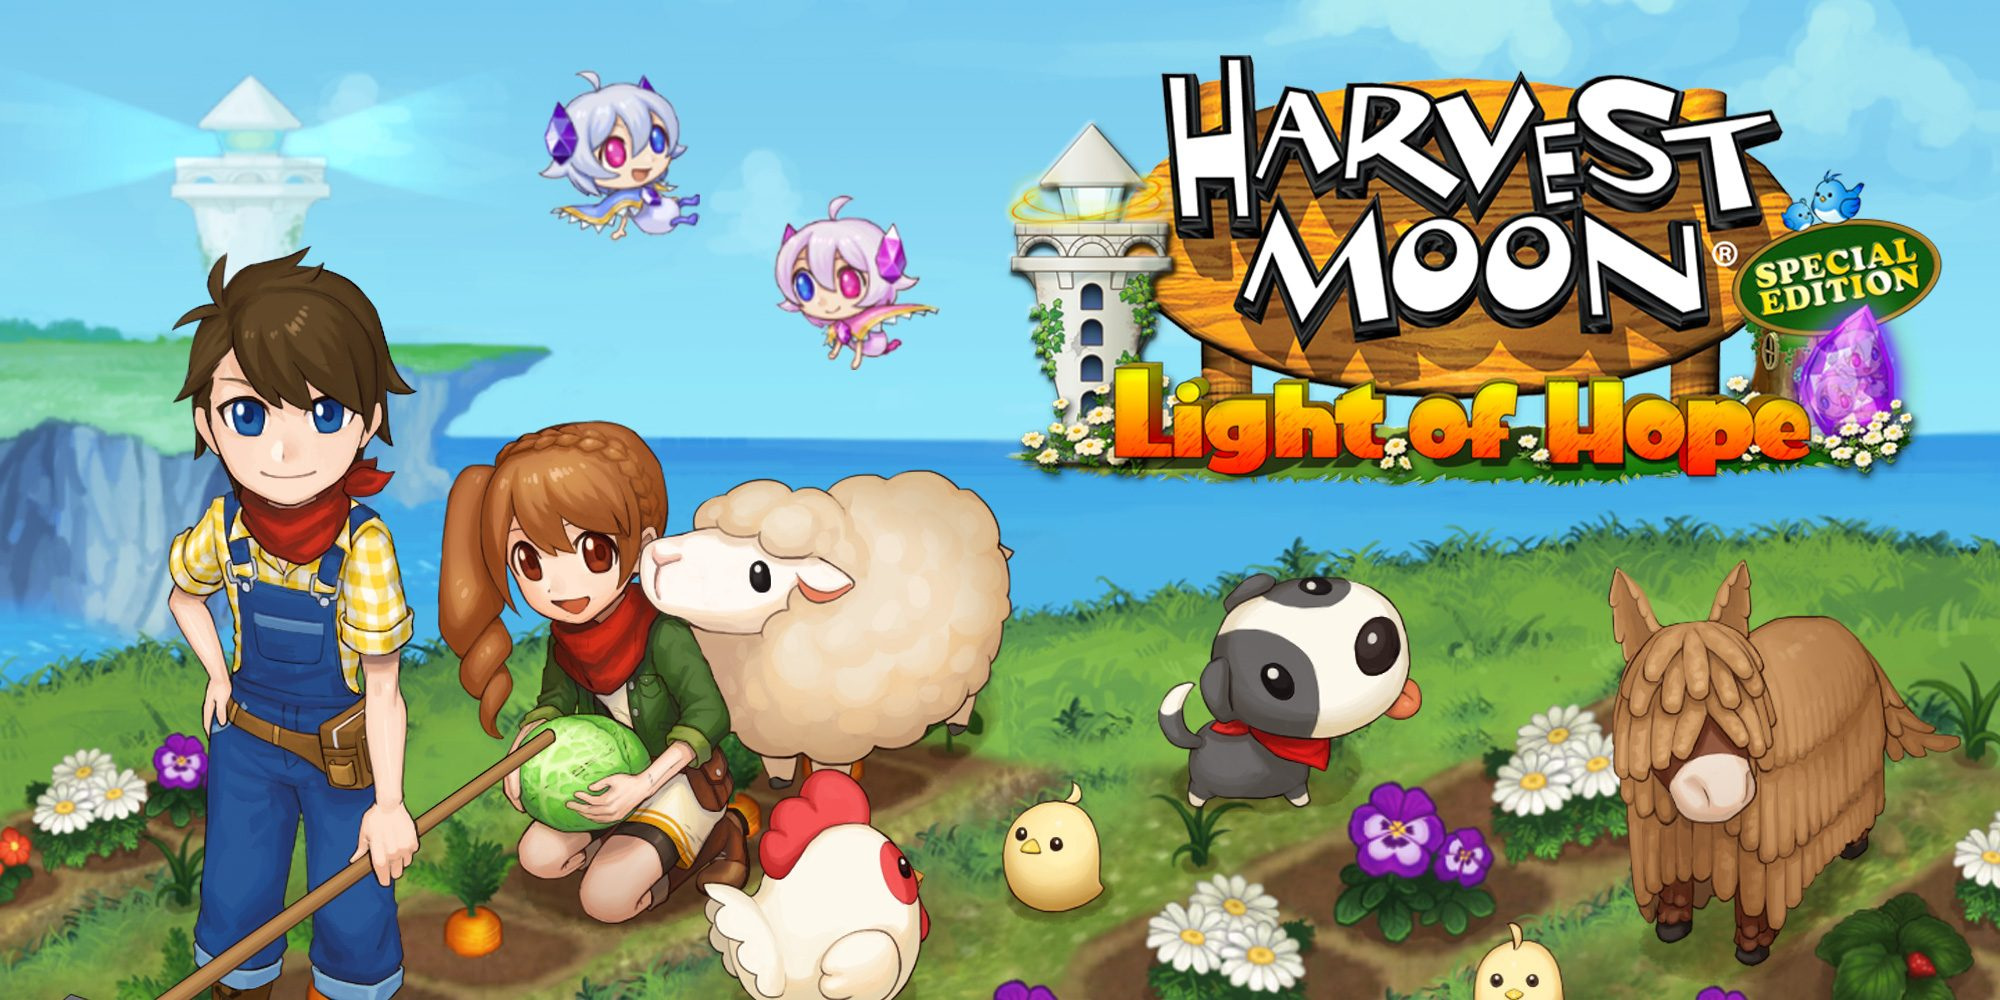 h2x1_nswitch_harvestmoonlightofhopespecialedition_engb-2392109